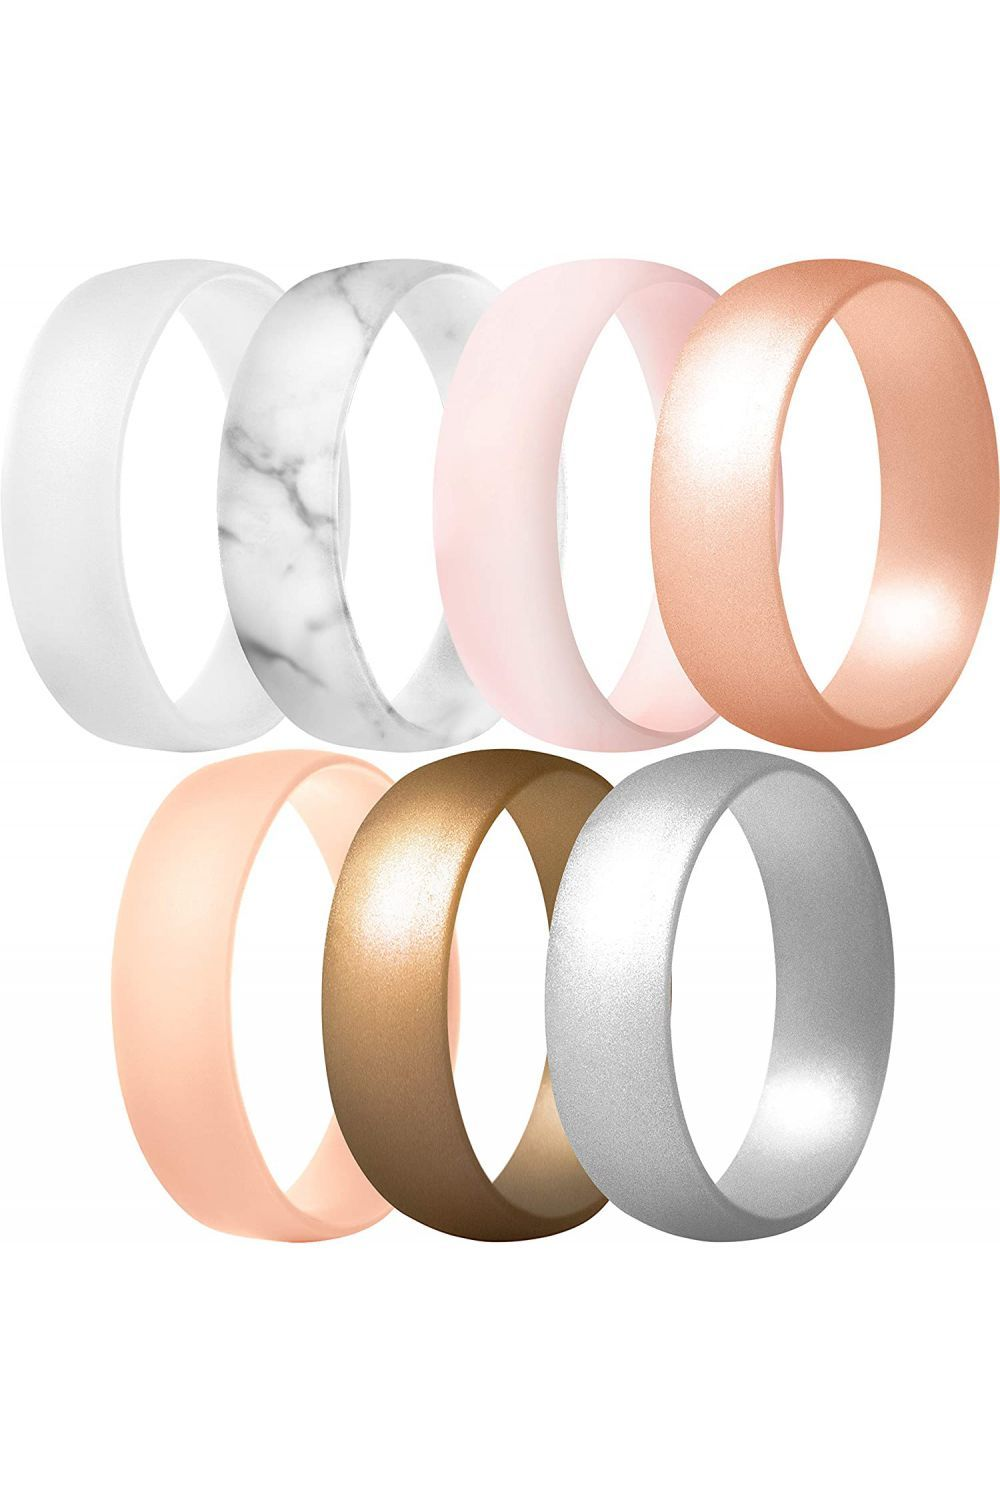 ThunderFit Silicone Rings 1 Ring Wedding Bands for Men /& Women 6mm Wide 1.65mm Thick 7 Rings